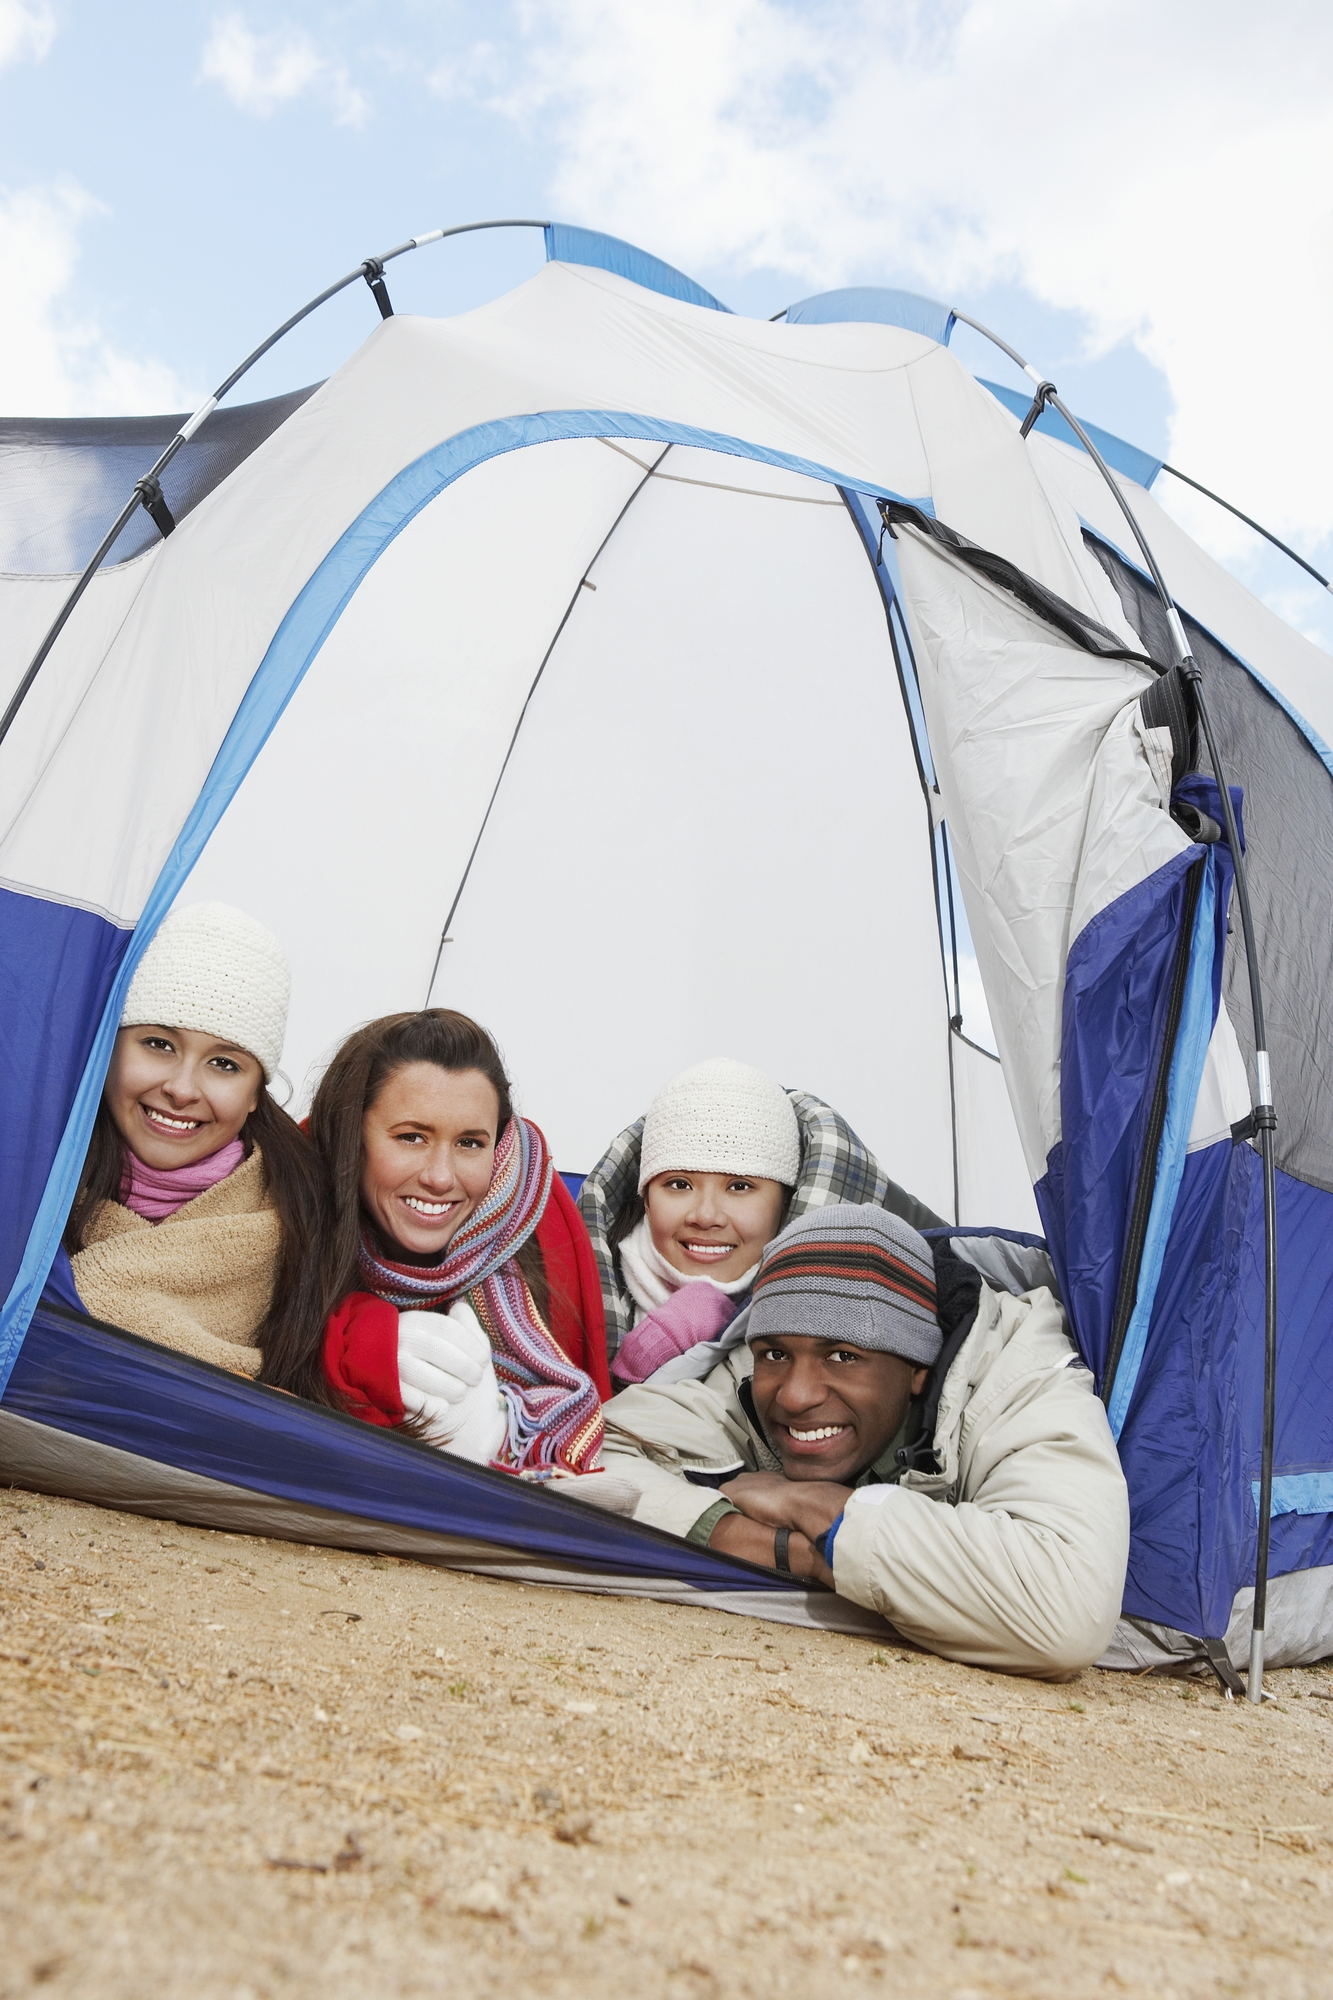 Group of friends inside The pros and cons instant tent